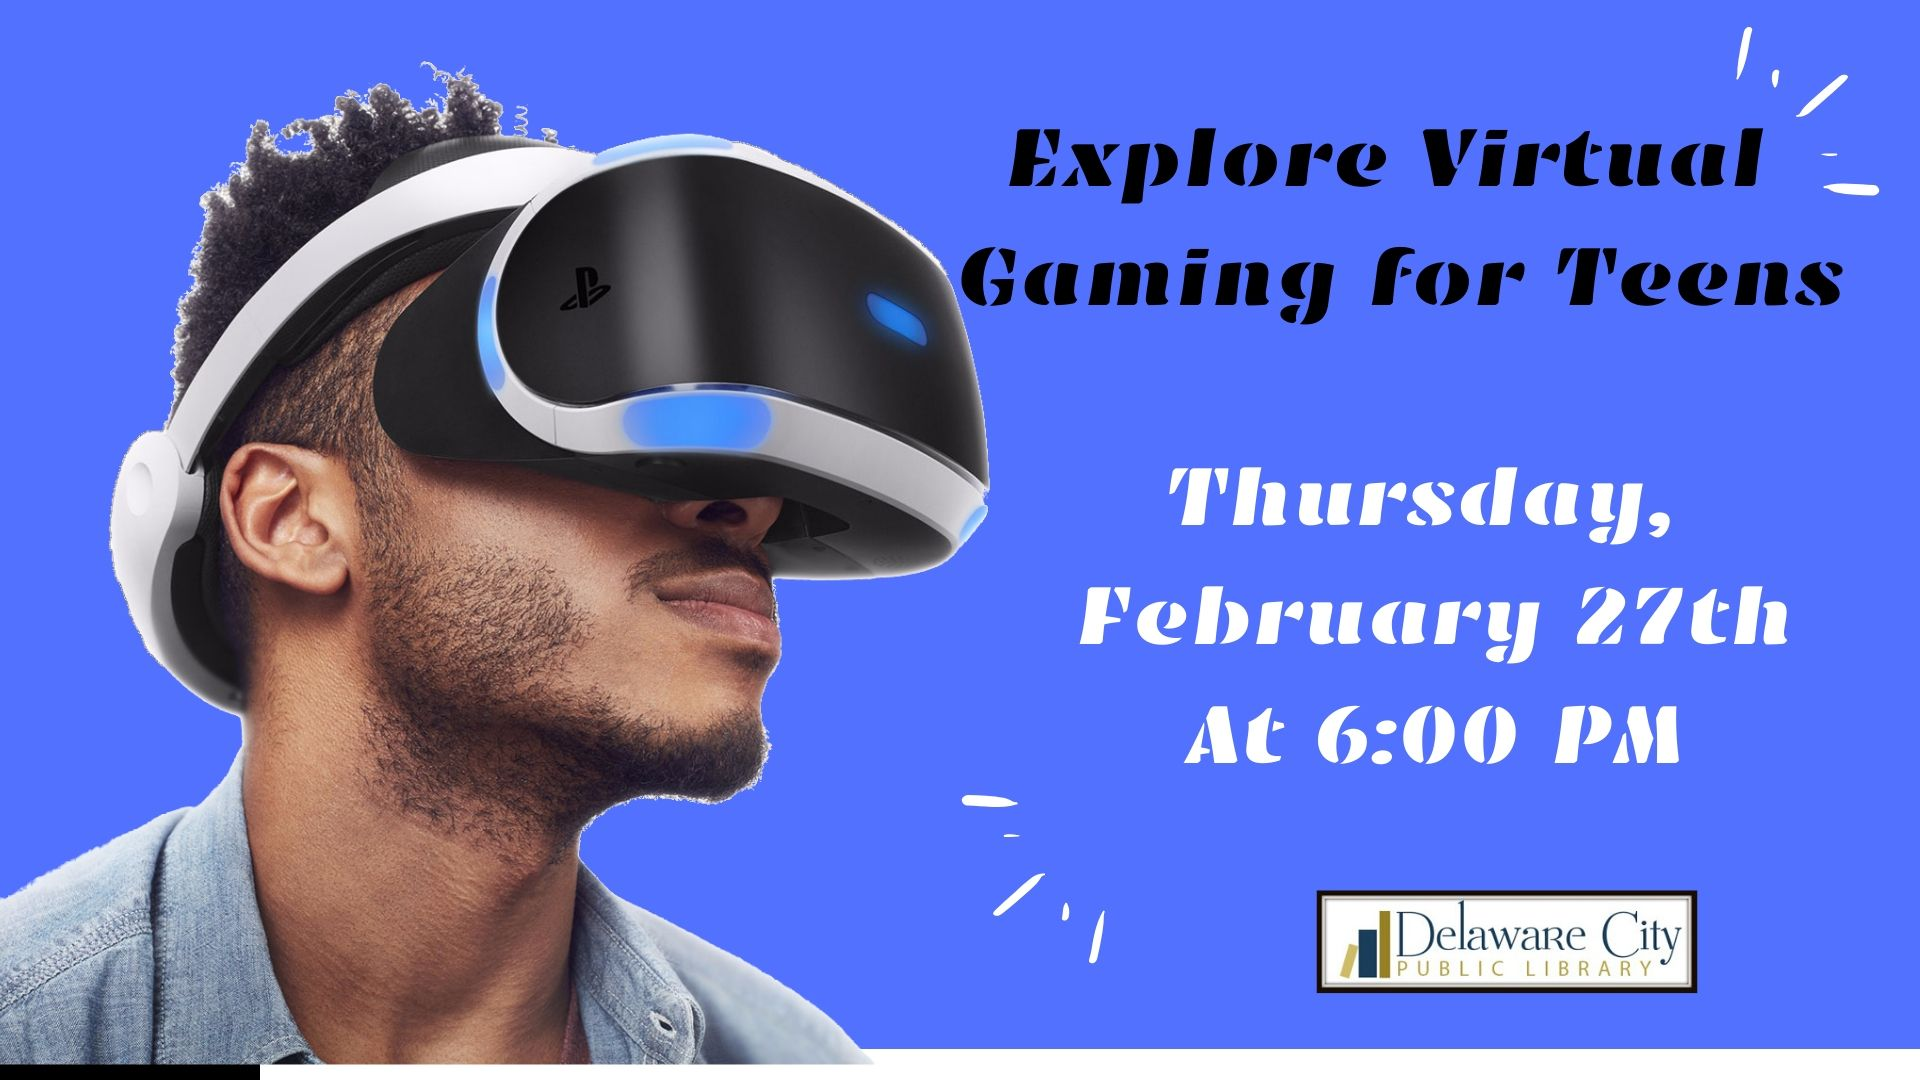 Explore Virtual Gaming for Teens